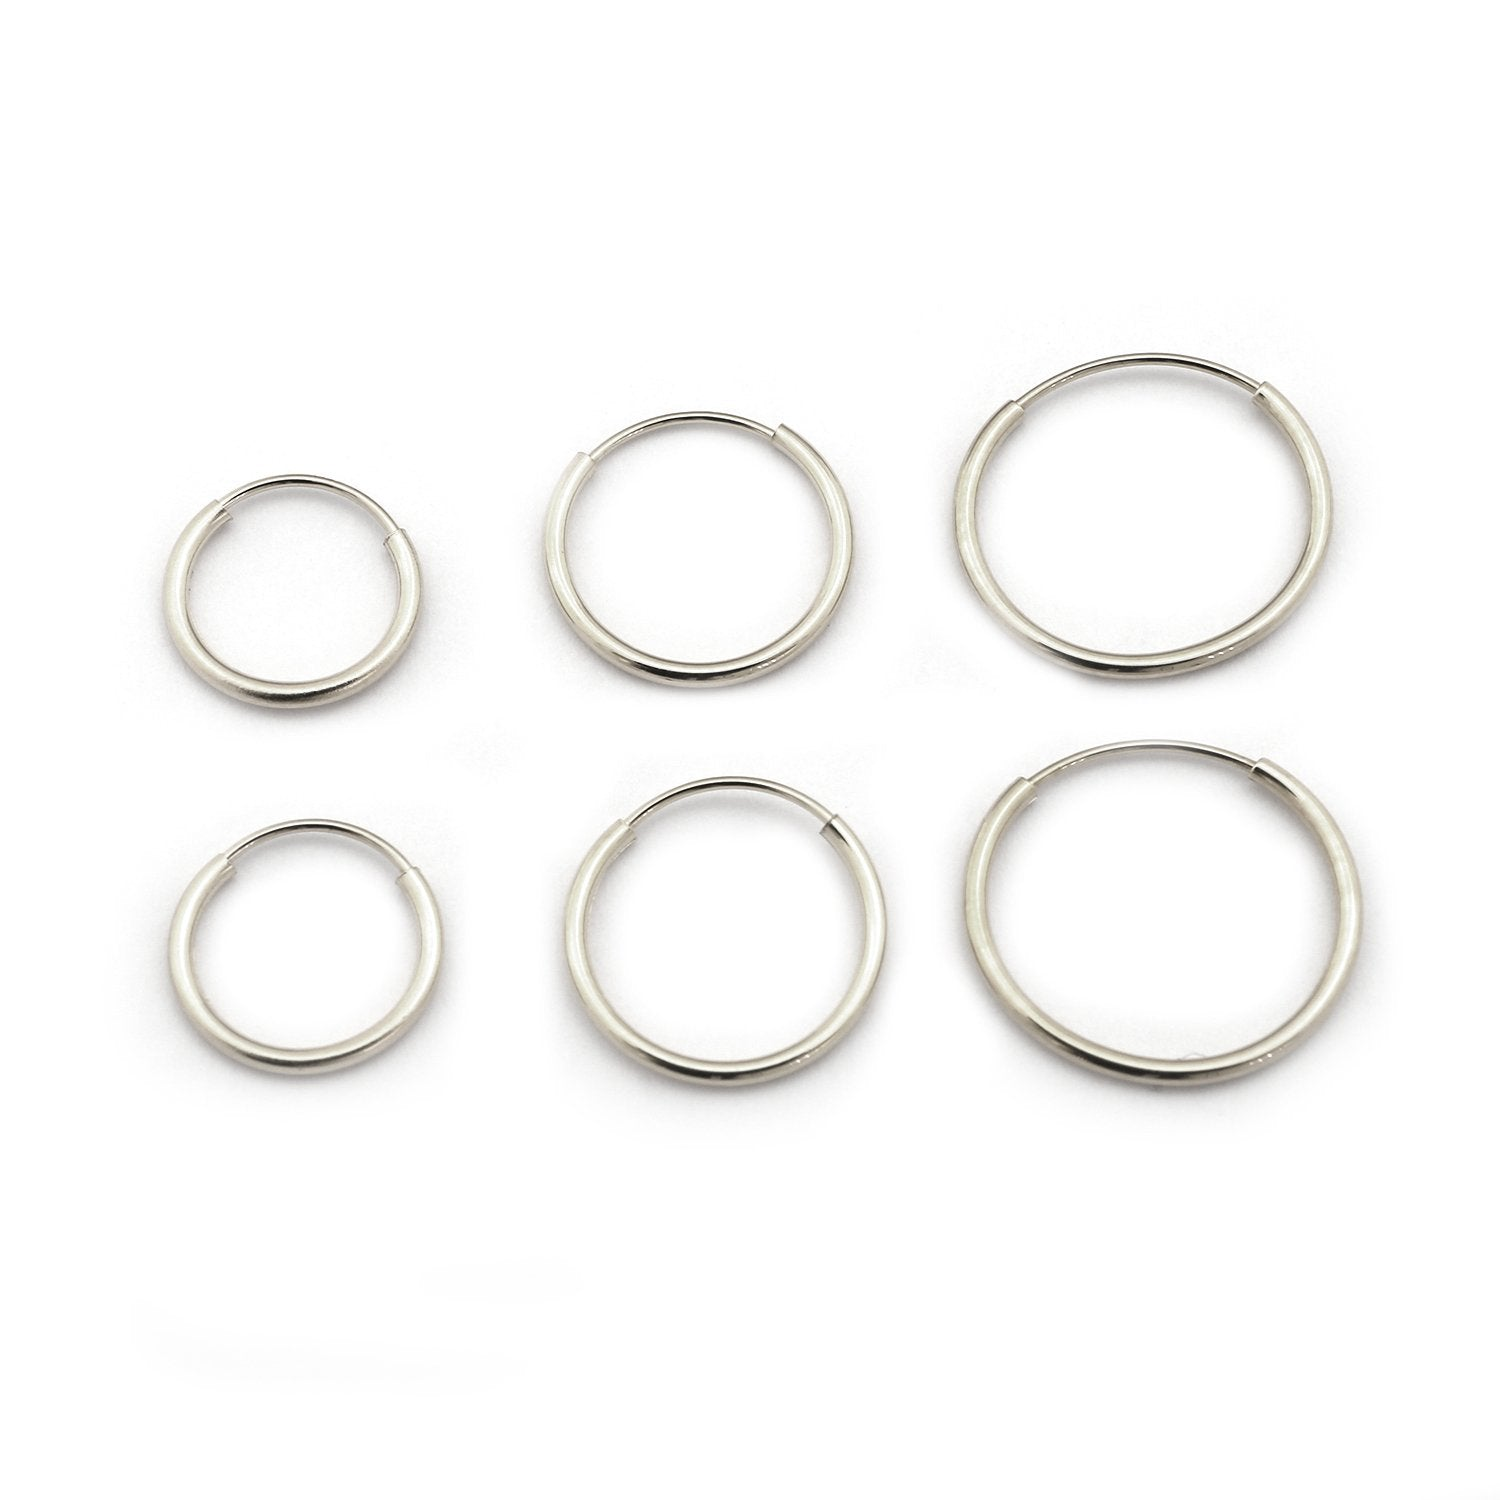 14k Yellow Or White Gold 10mm 12mm And 14mm Endless Hoop Earrings